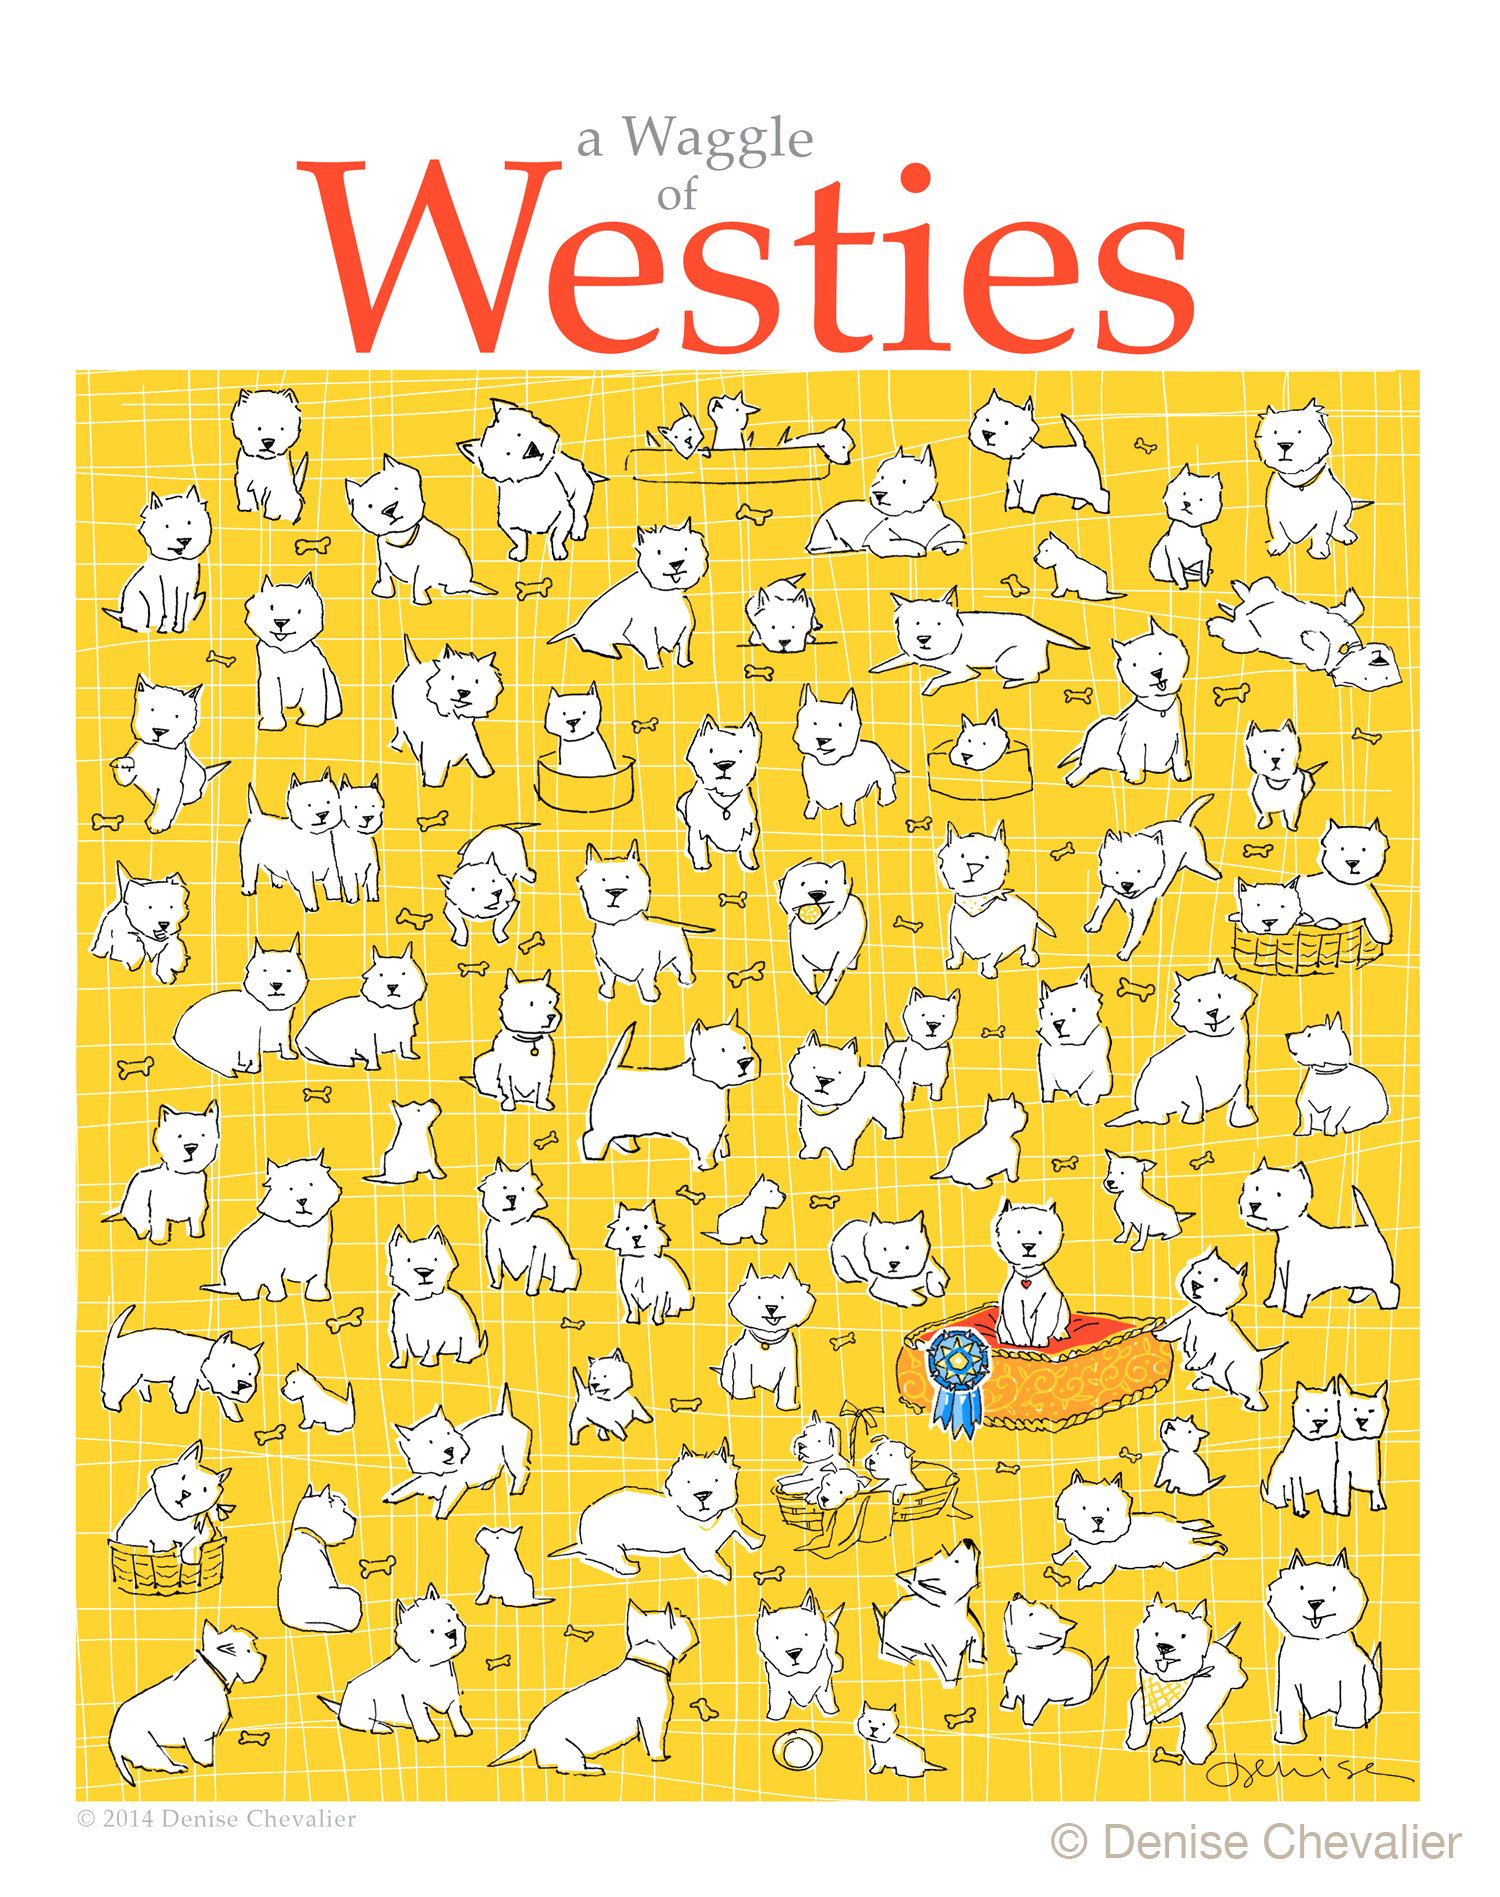 DC Waggle of Westies.jpg